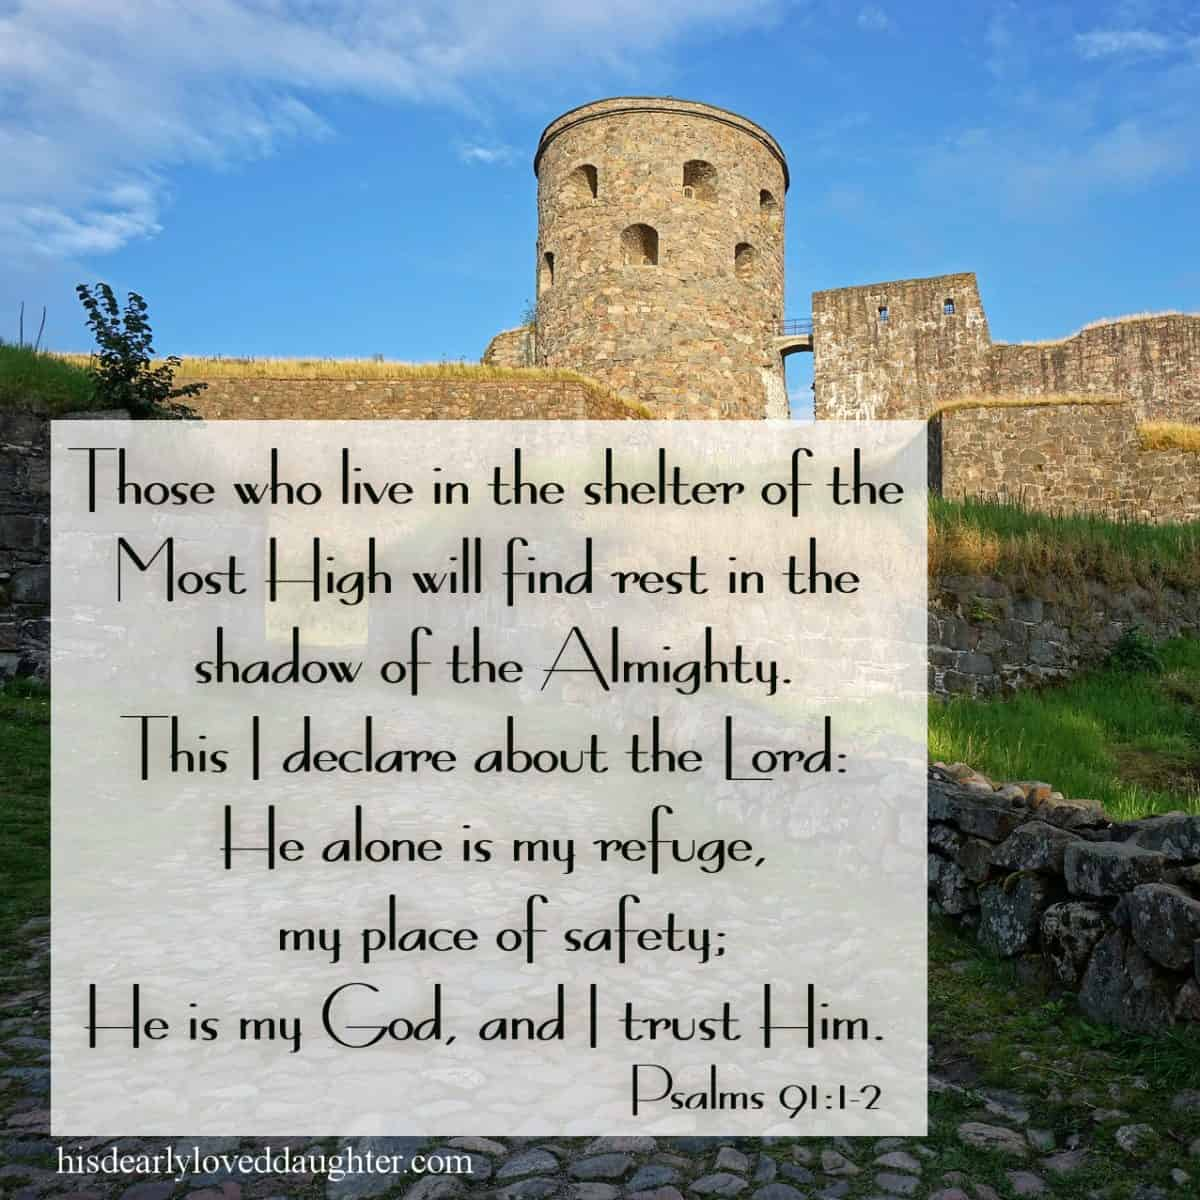 Those who live in the shelter of theMost Highwill find rest in the shadow of the Almighty. This I declare about the Lord: He alone is my refuge, my place of safety; He is my God, and I trust Him.Psalms 91:1-2